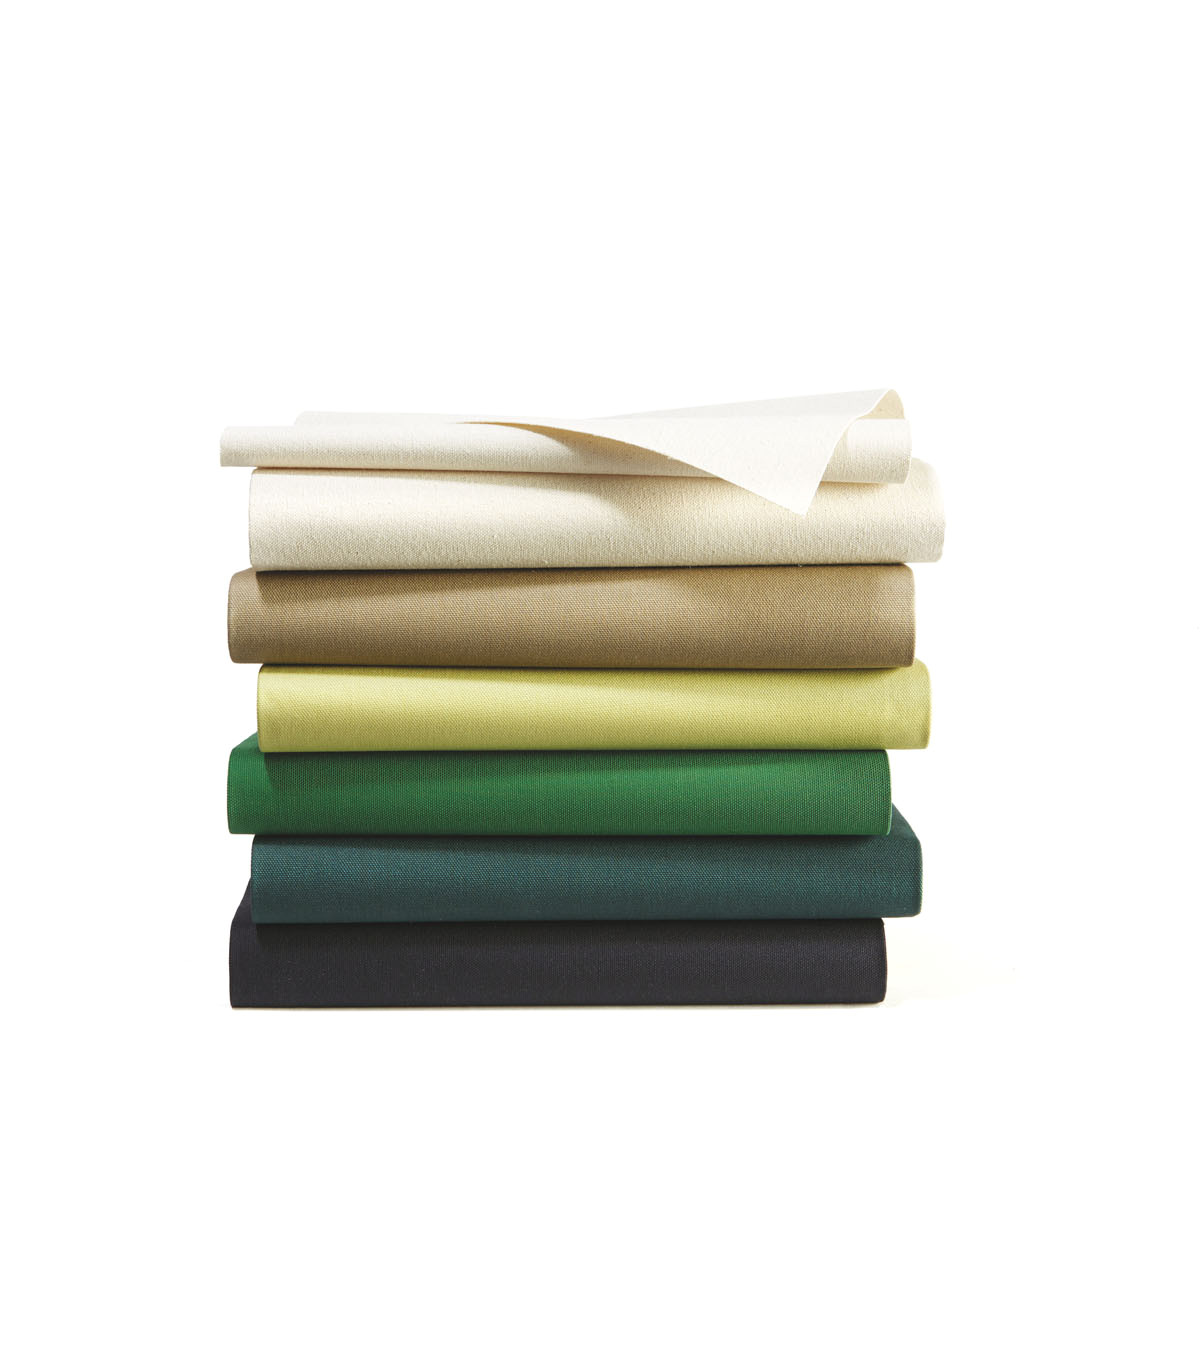 Fabric Stores In Evansville Indiana Duck Canvas Fabric Utility Fabrics Joann